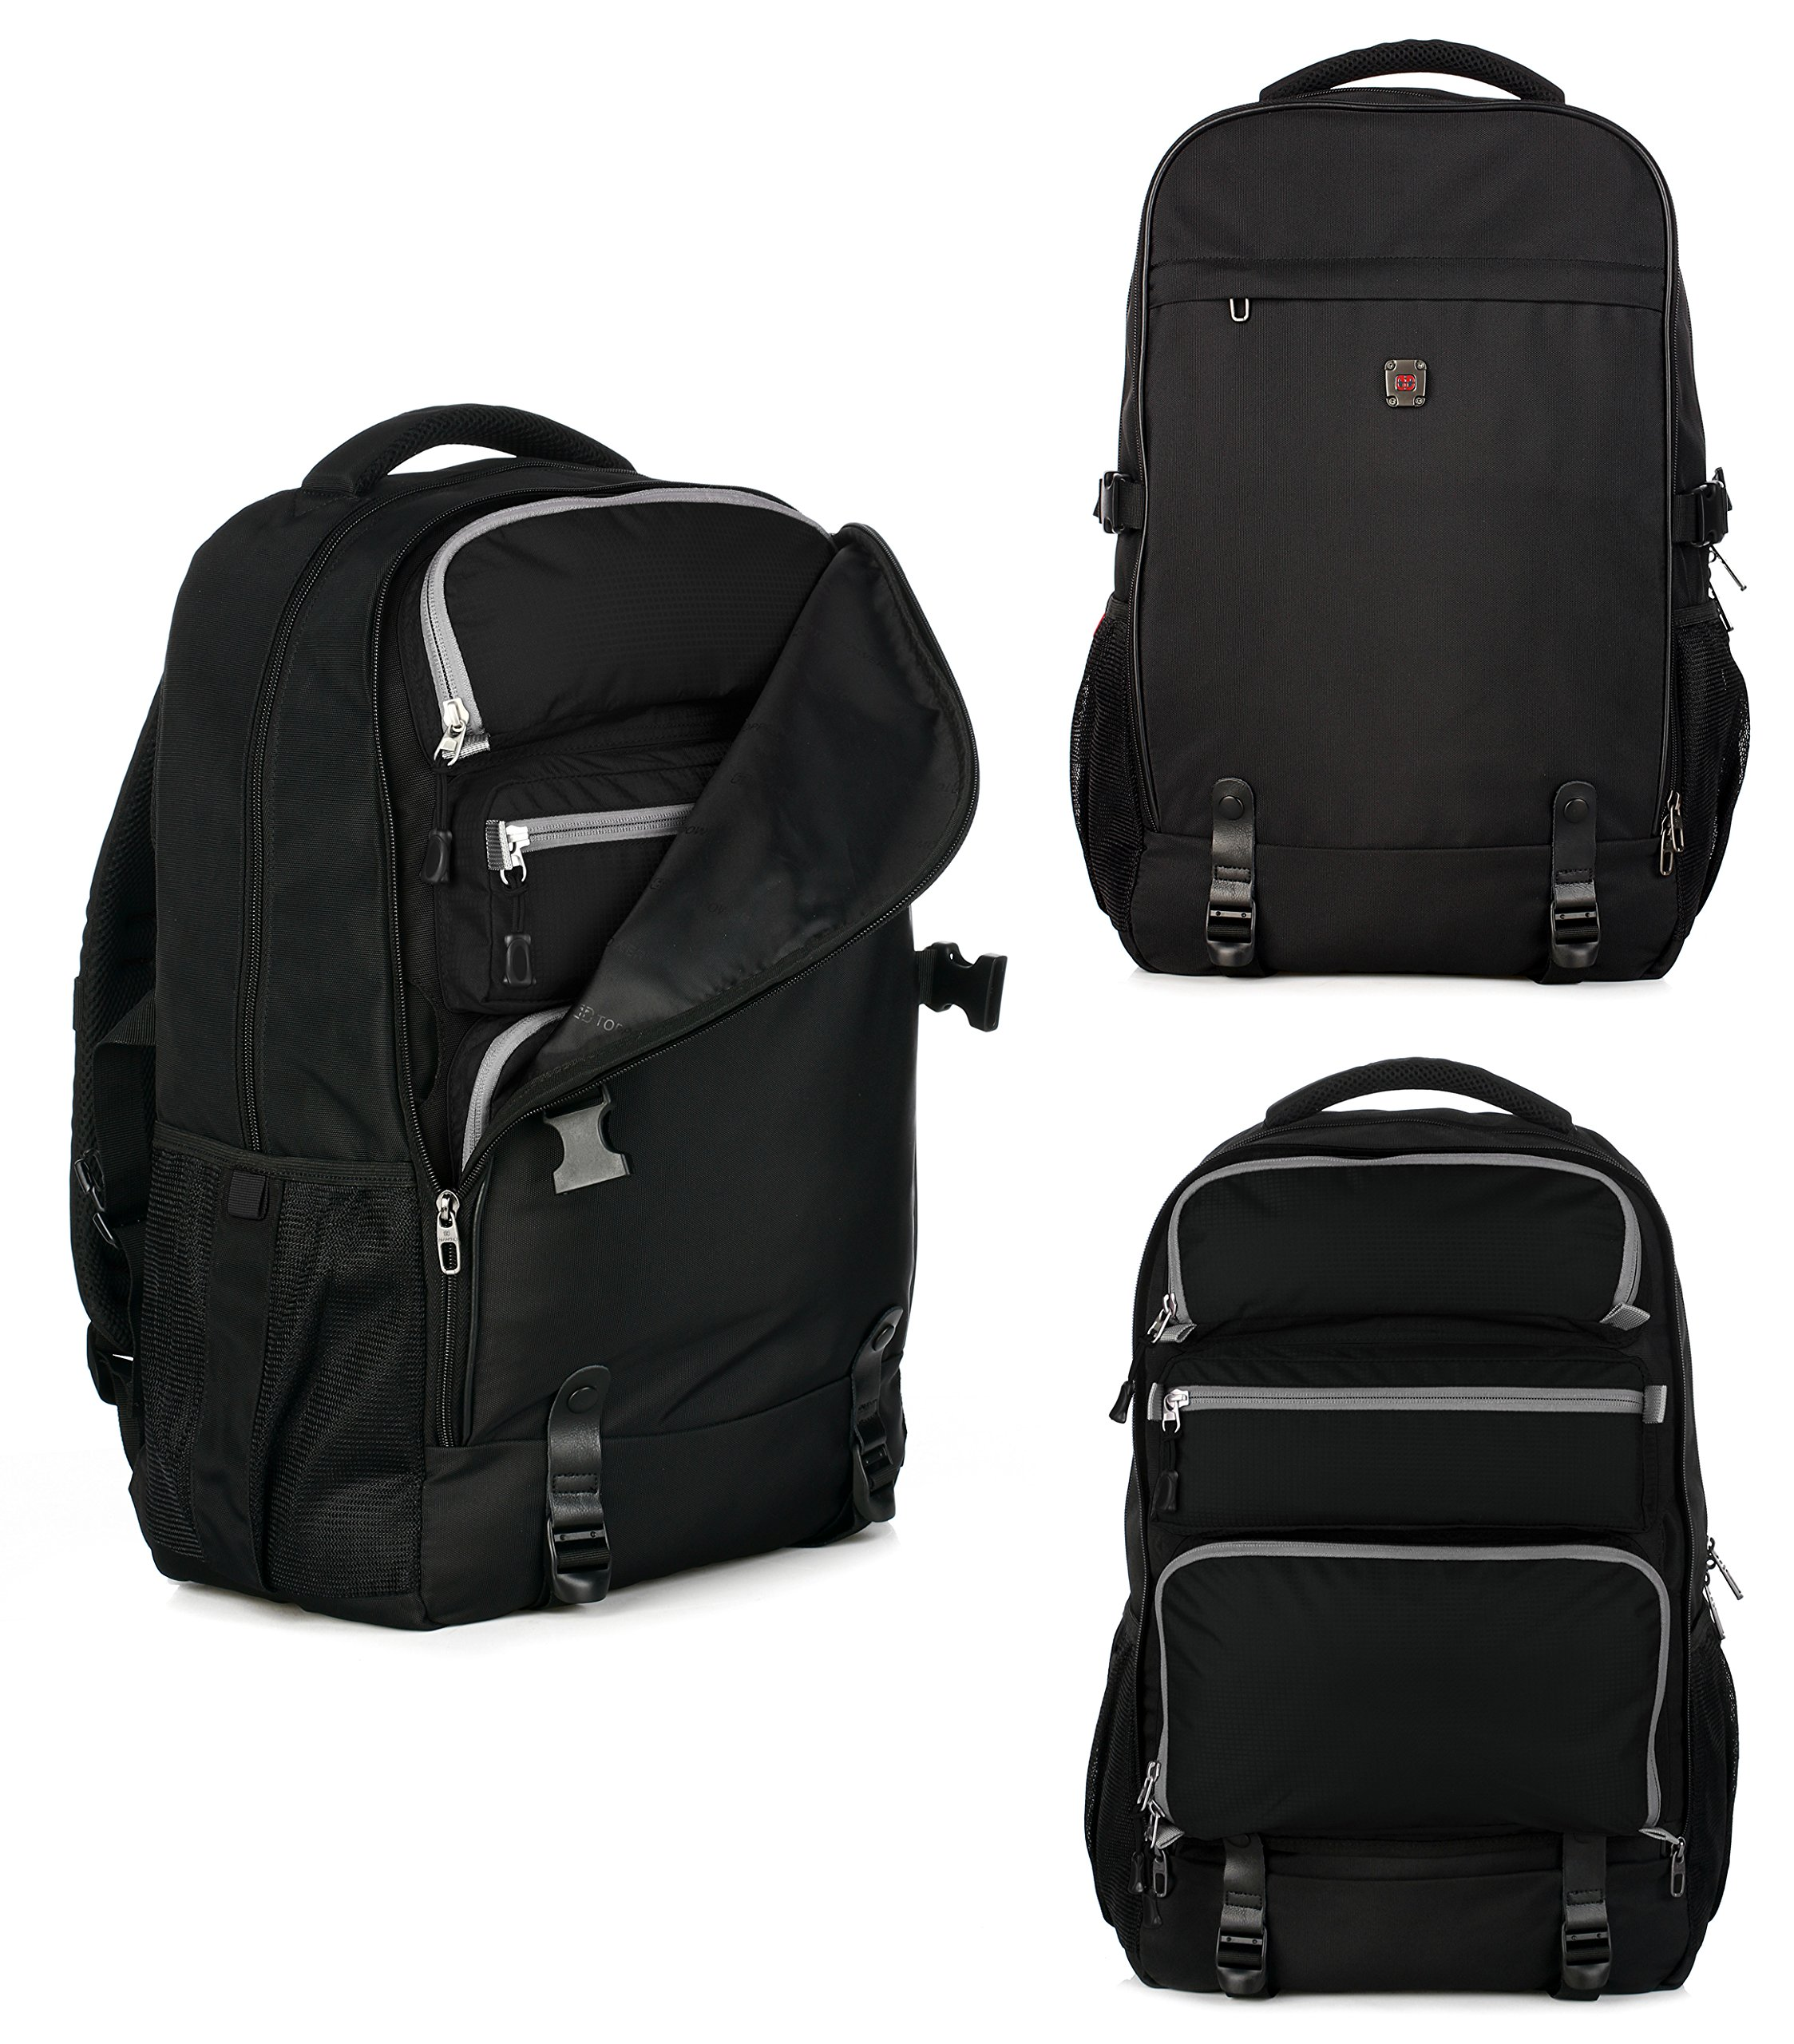 Top Power 8006 Transformable Convertible Carry-on Travel Backpack with Laptop Compartment-Black/black